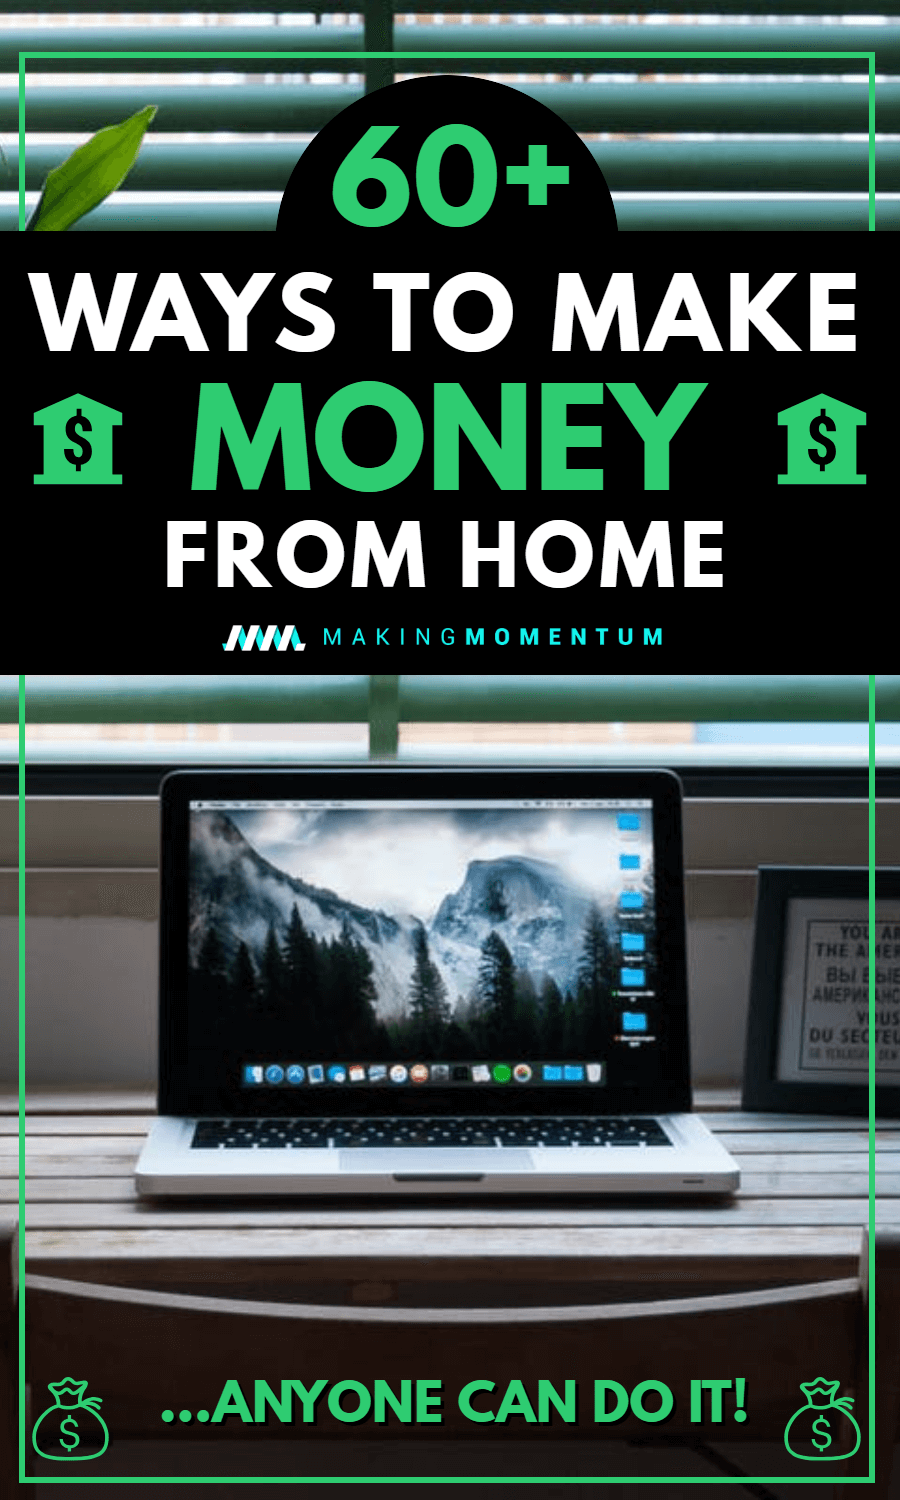 60 Ways To Make Money Online From Home In Canada (Earn Extra Cash) #stayathome